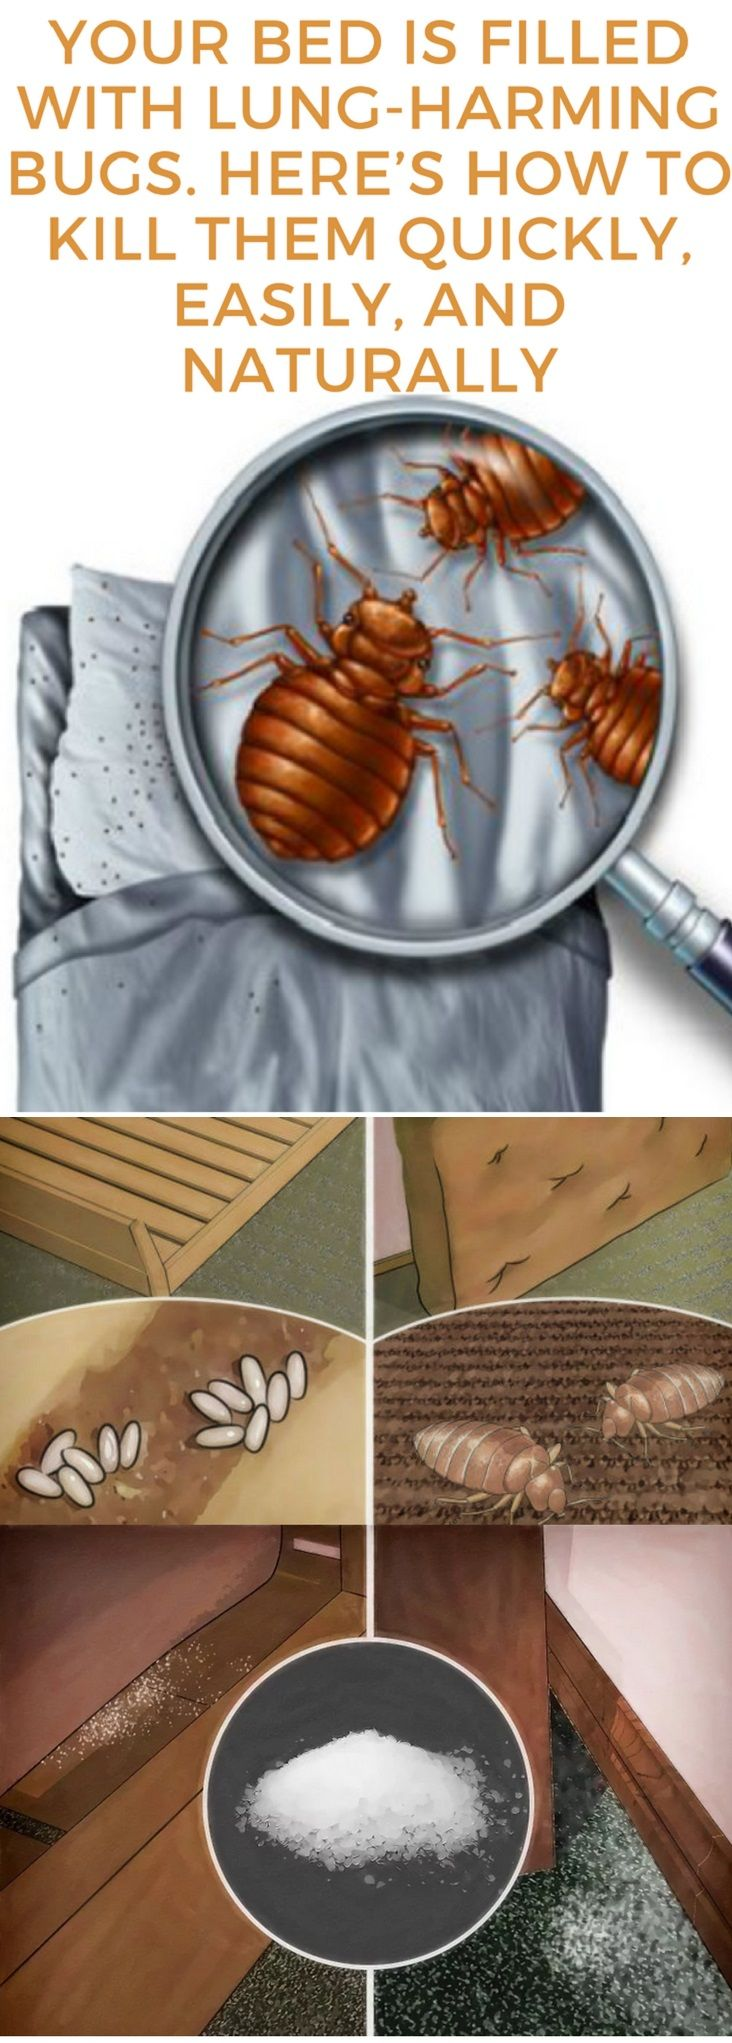 Your Bed Is Filled With Lung-Harming Bugs. Here's How To Kill Them Quickly, Easily, And Naturally